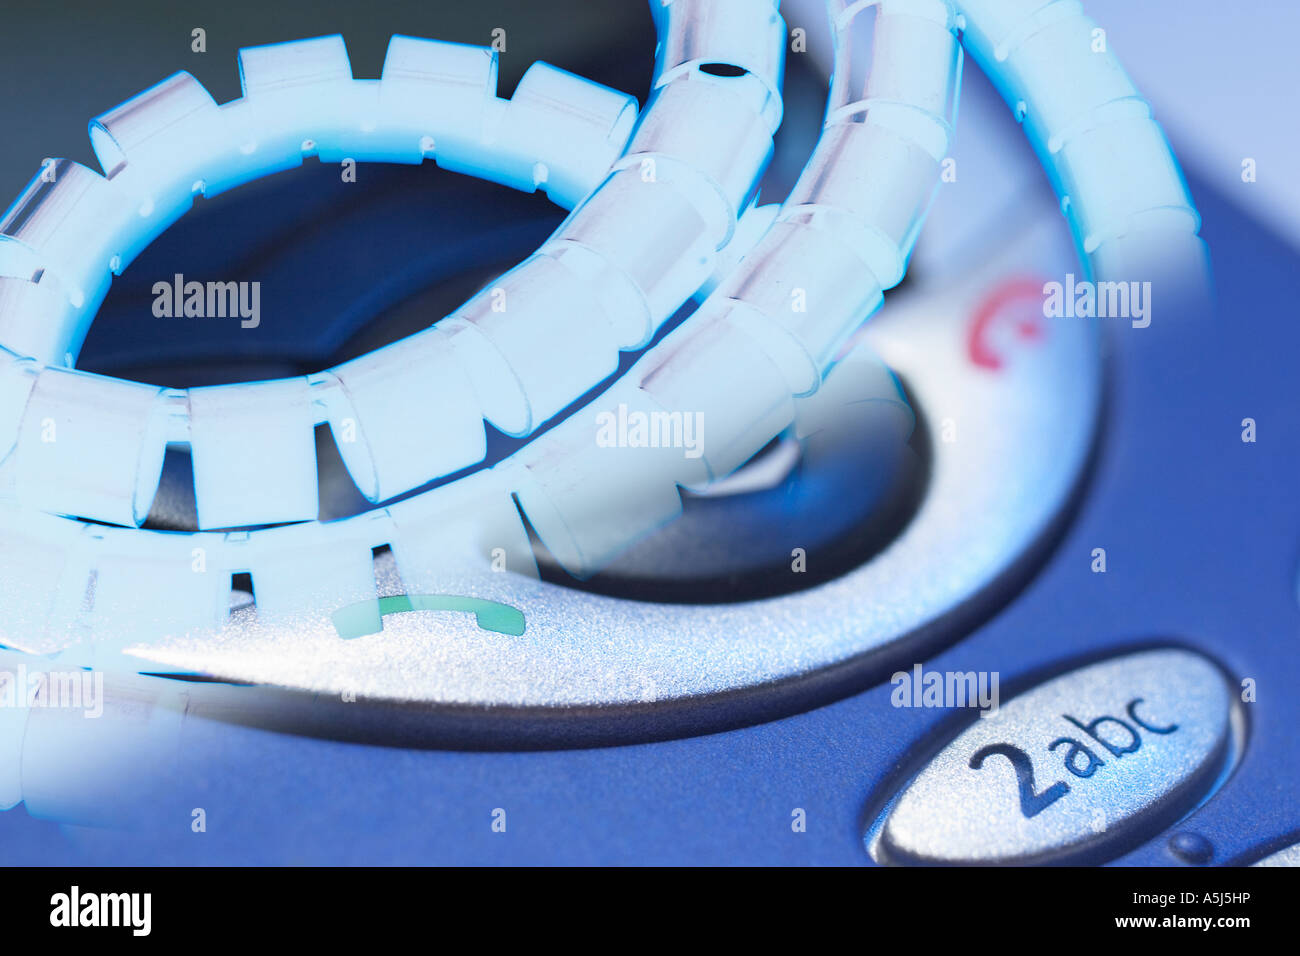 Cable Cover Stock Photos & Cable Cover Stock Images - Alamy